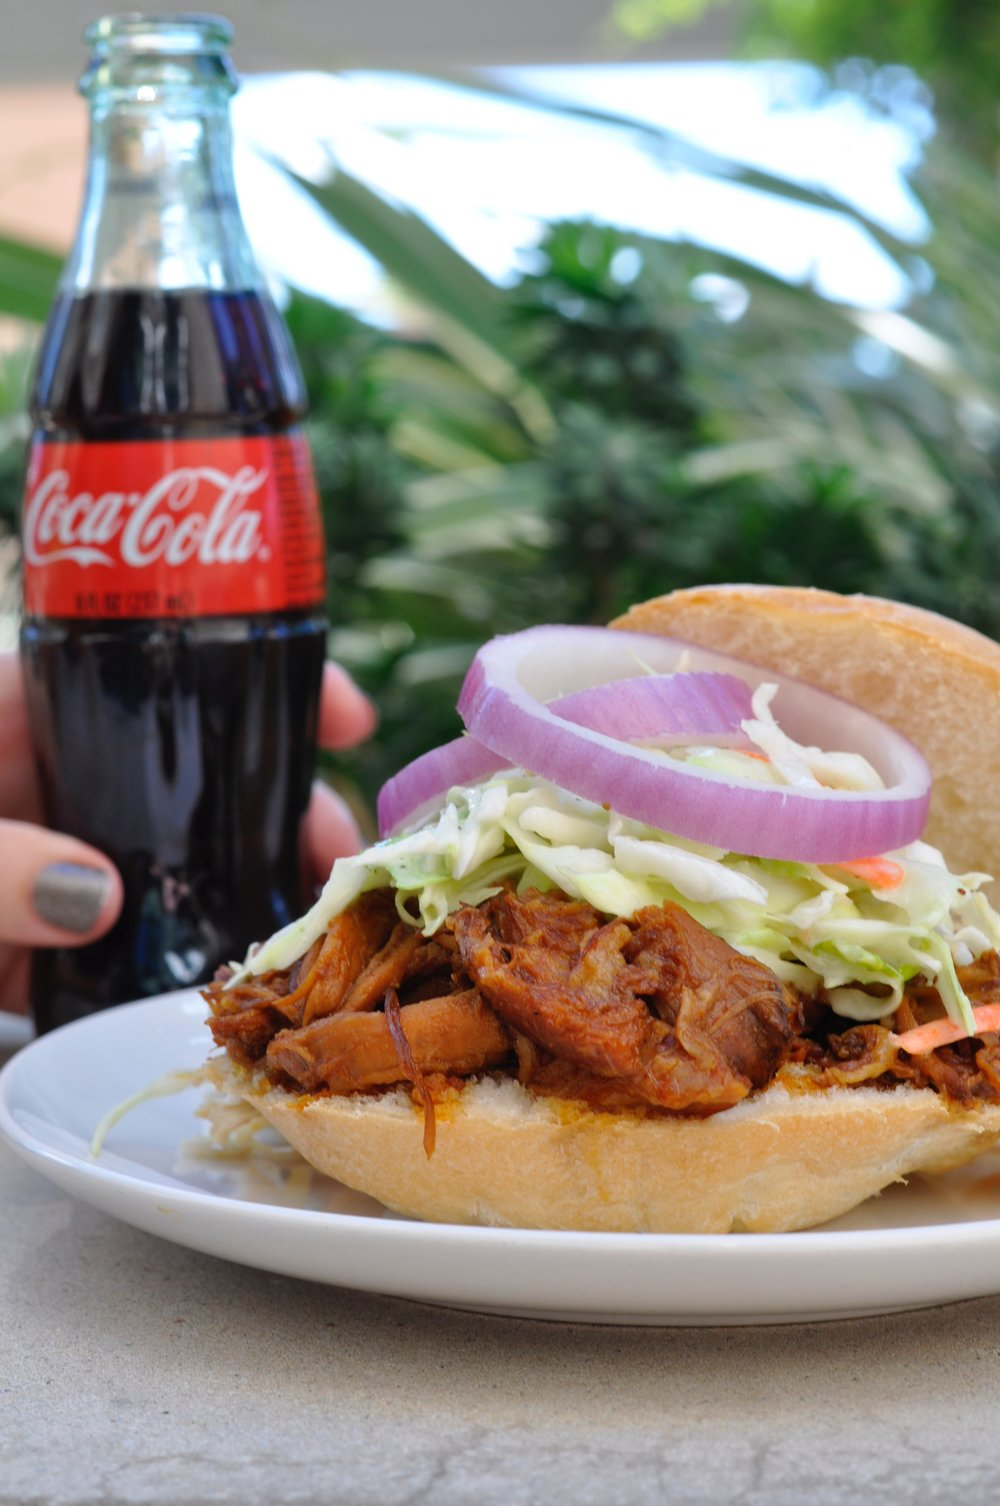 Coca Cola Pulled Pork Slow Cooker Recipe | coupleinthekitchen.com